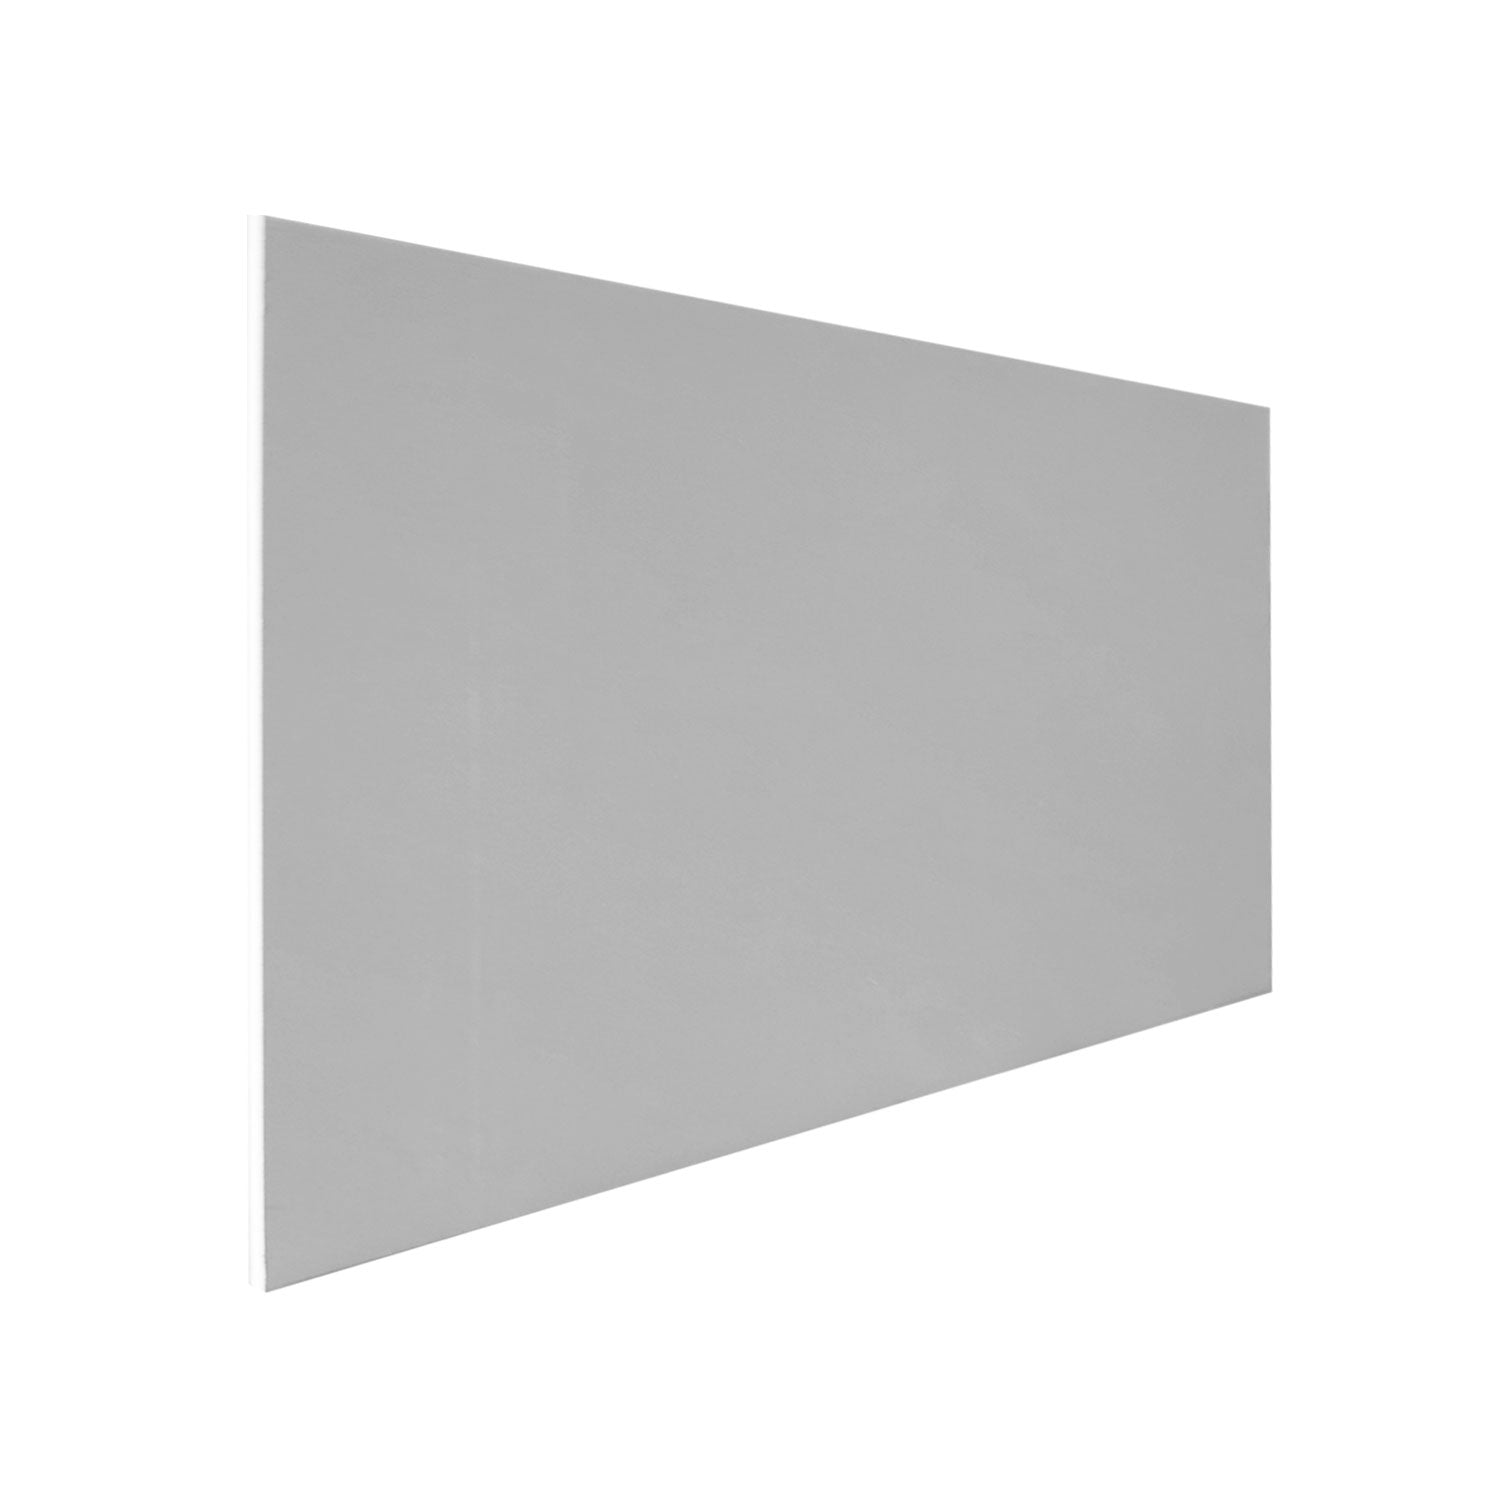 Plasterboard 6' x 3' 12.5mm Square Edge